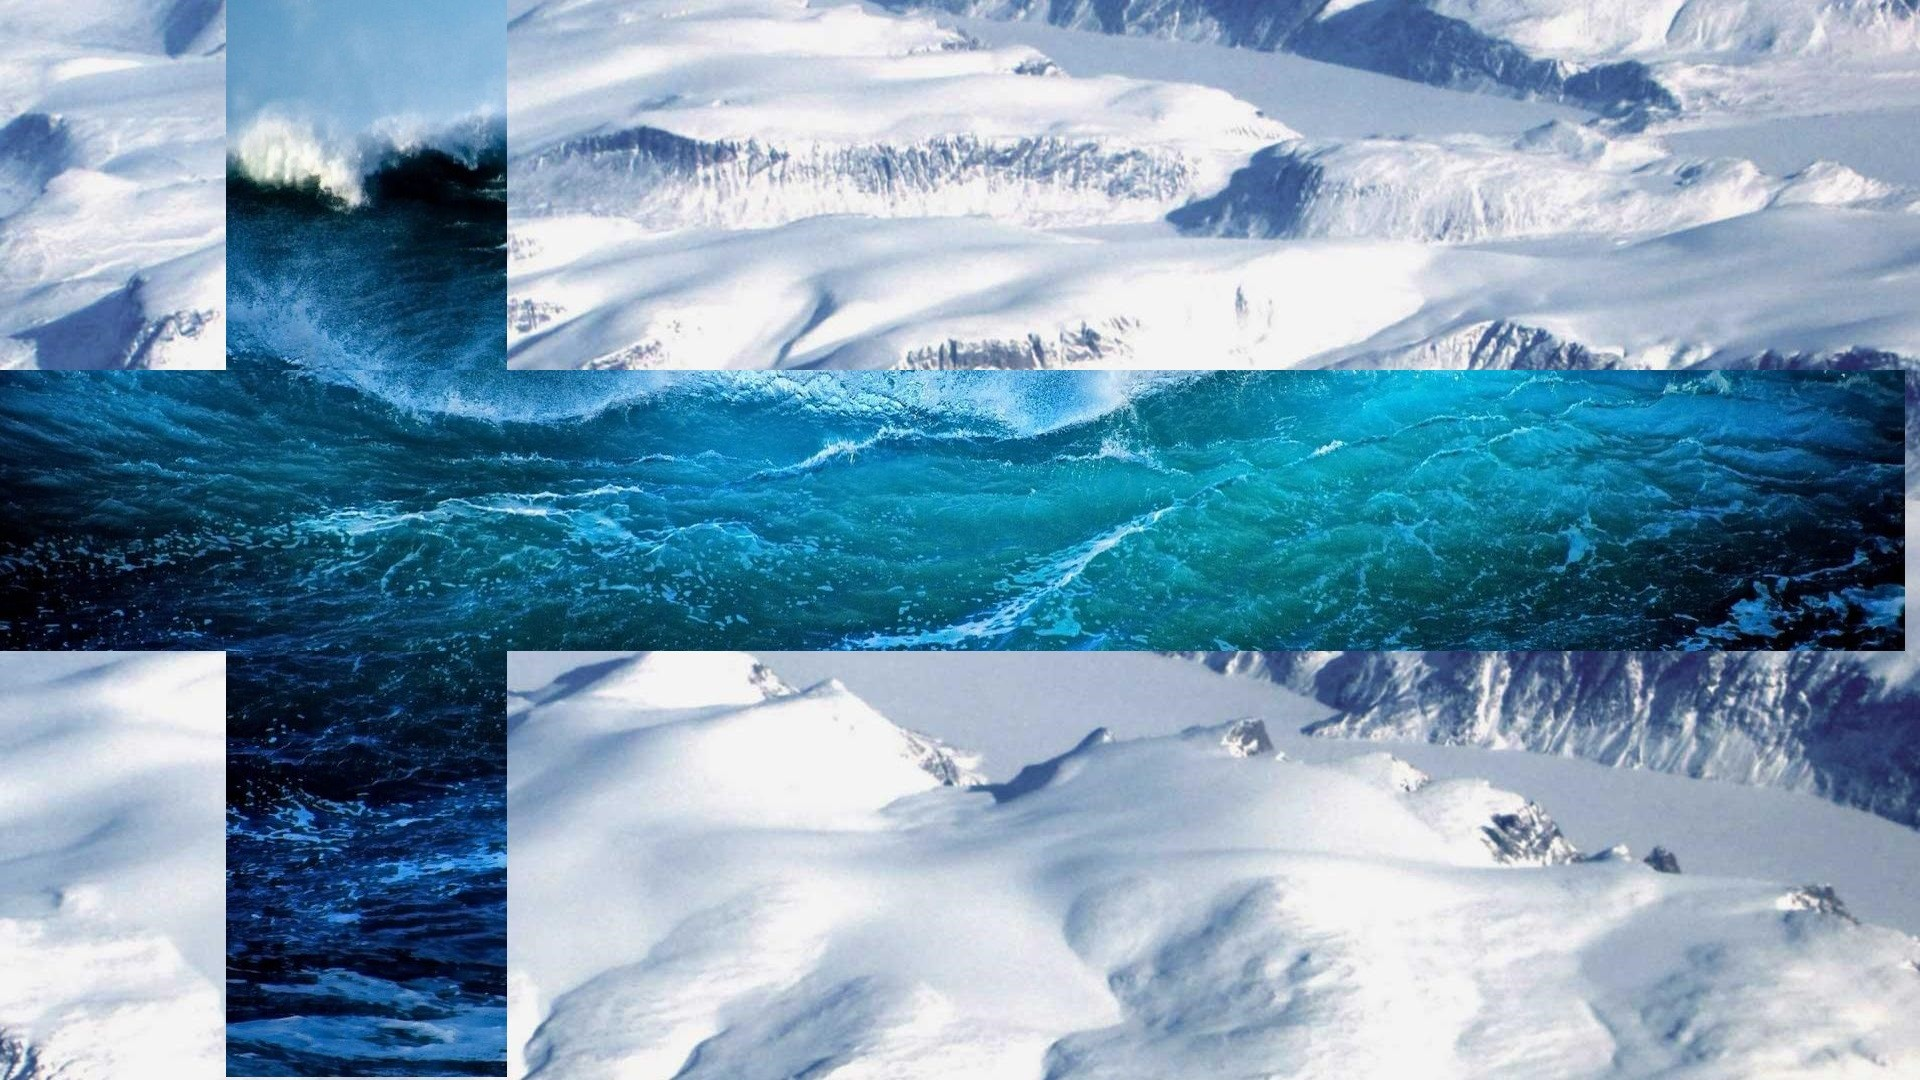 Uhd 3d Wallpaper Download Water Snow Finland Flag Mountains Sea Wallpapers Hd